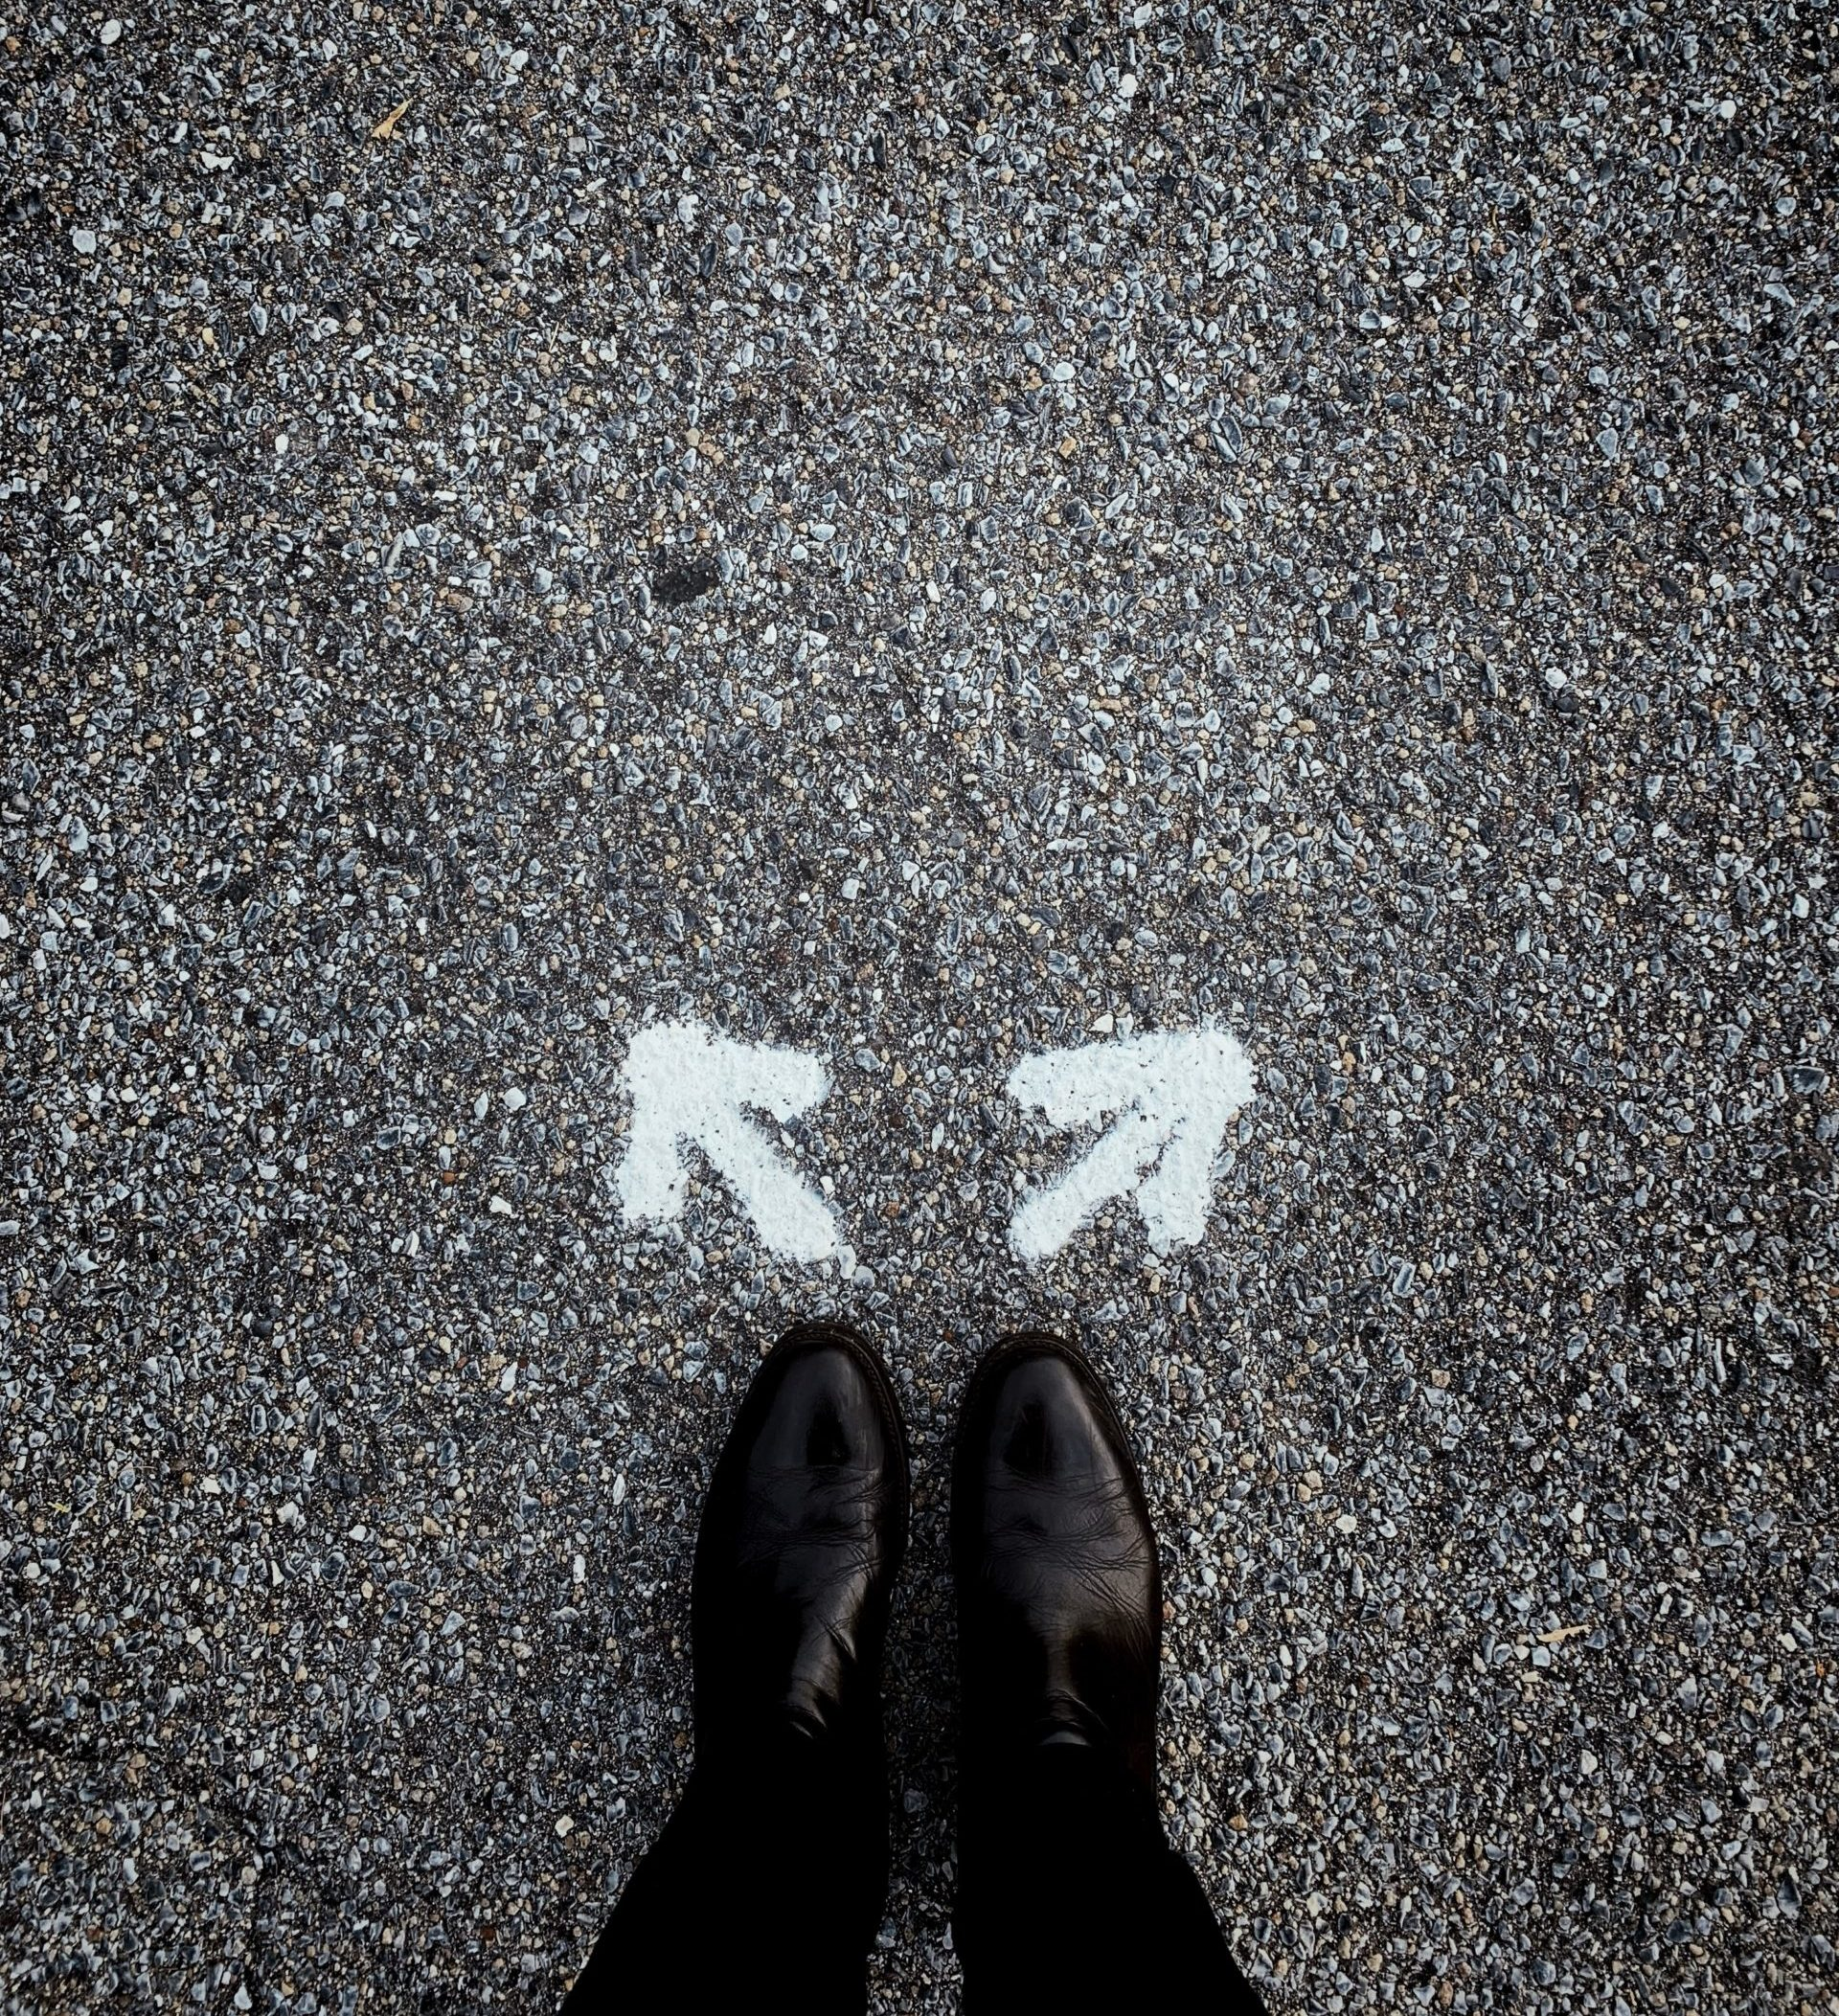 person's feet in front of a set up arrows pointing forward but in opposite directions